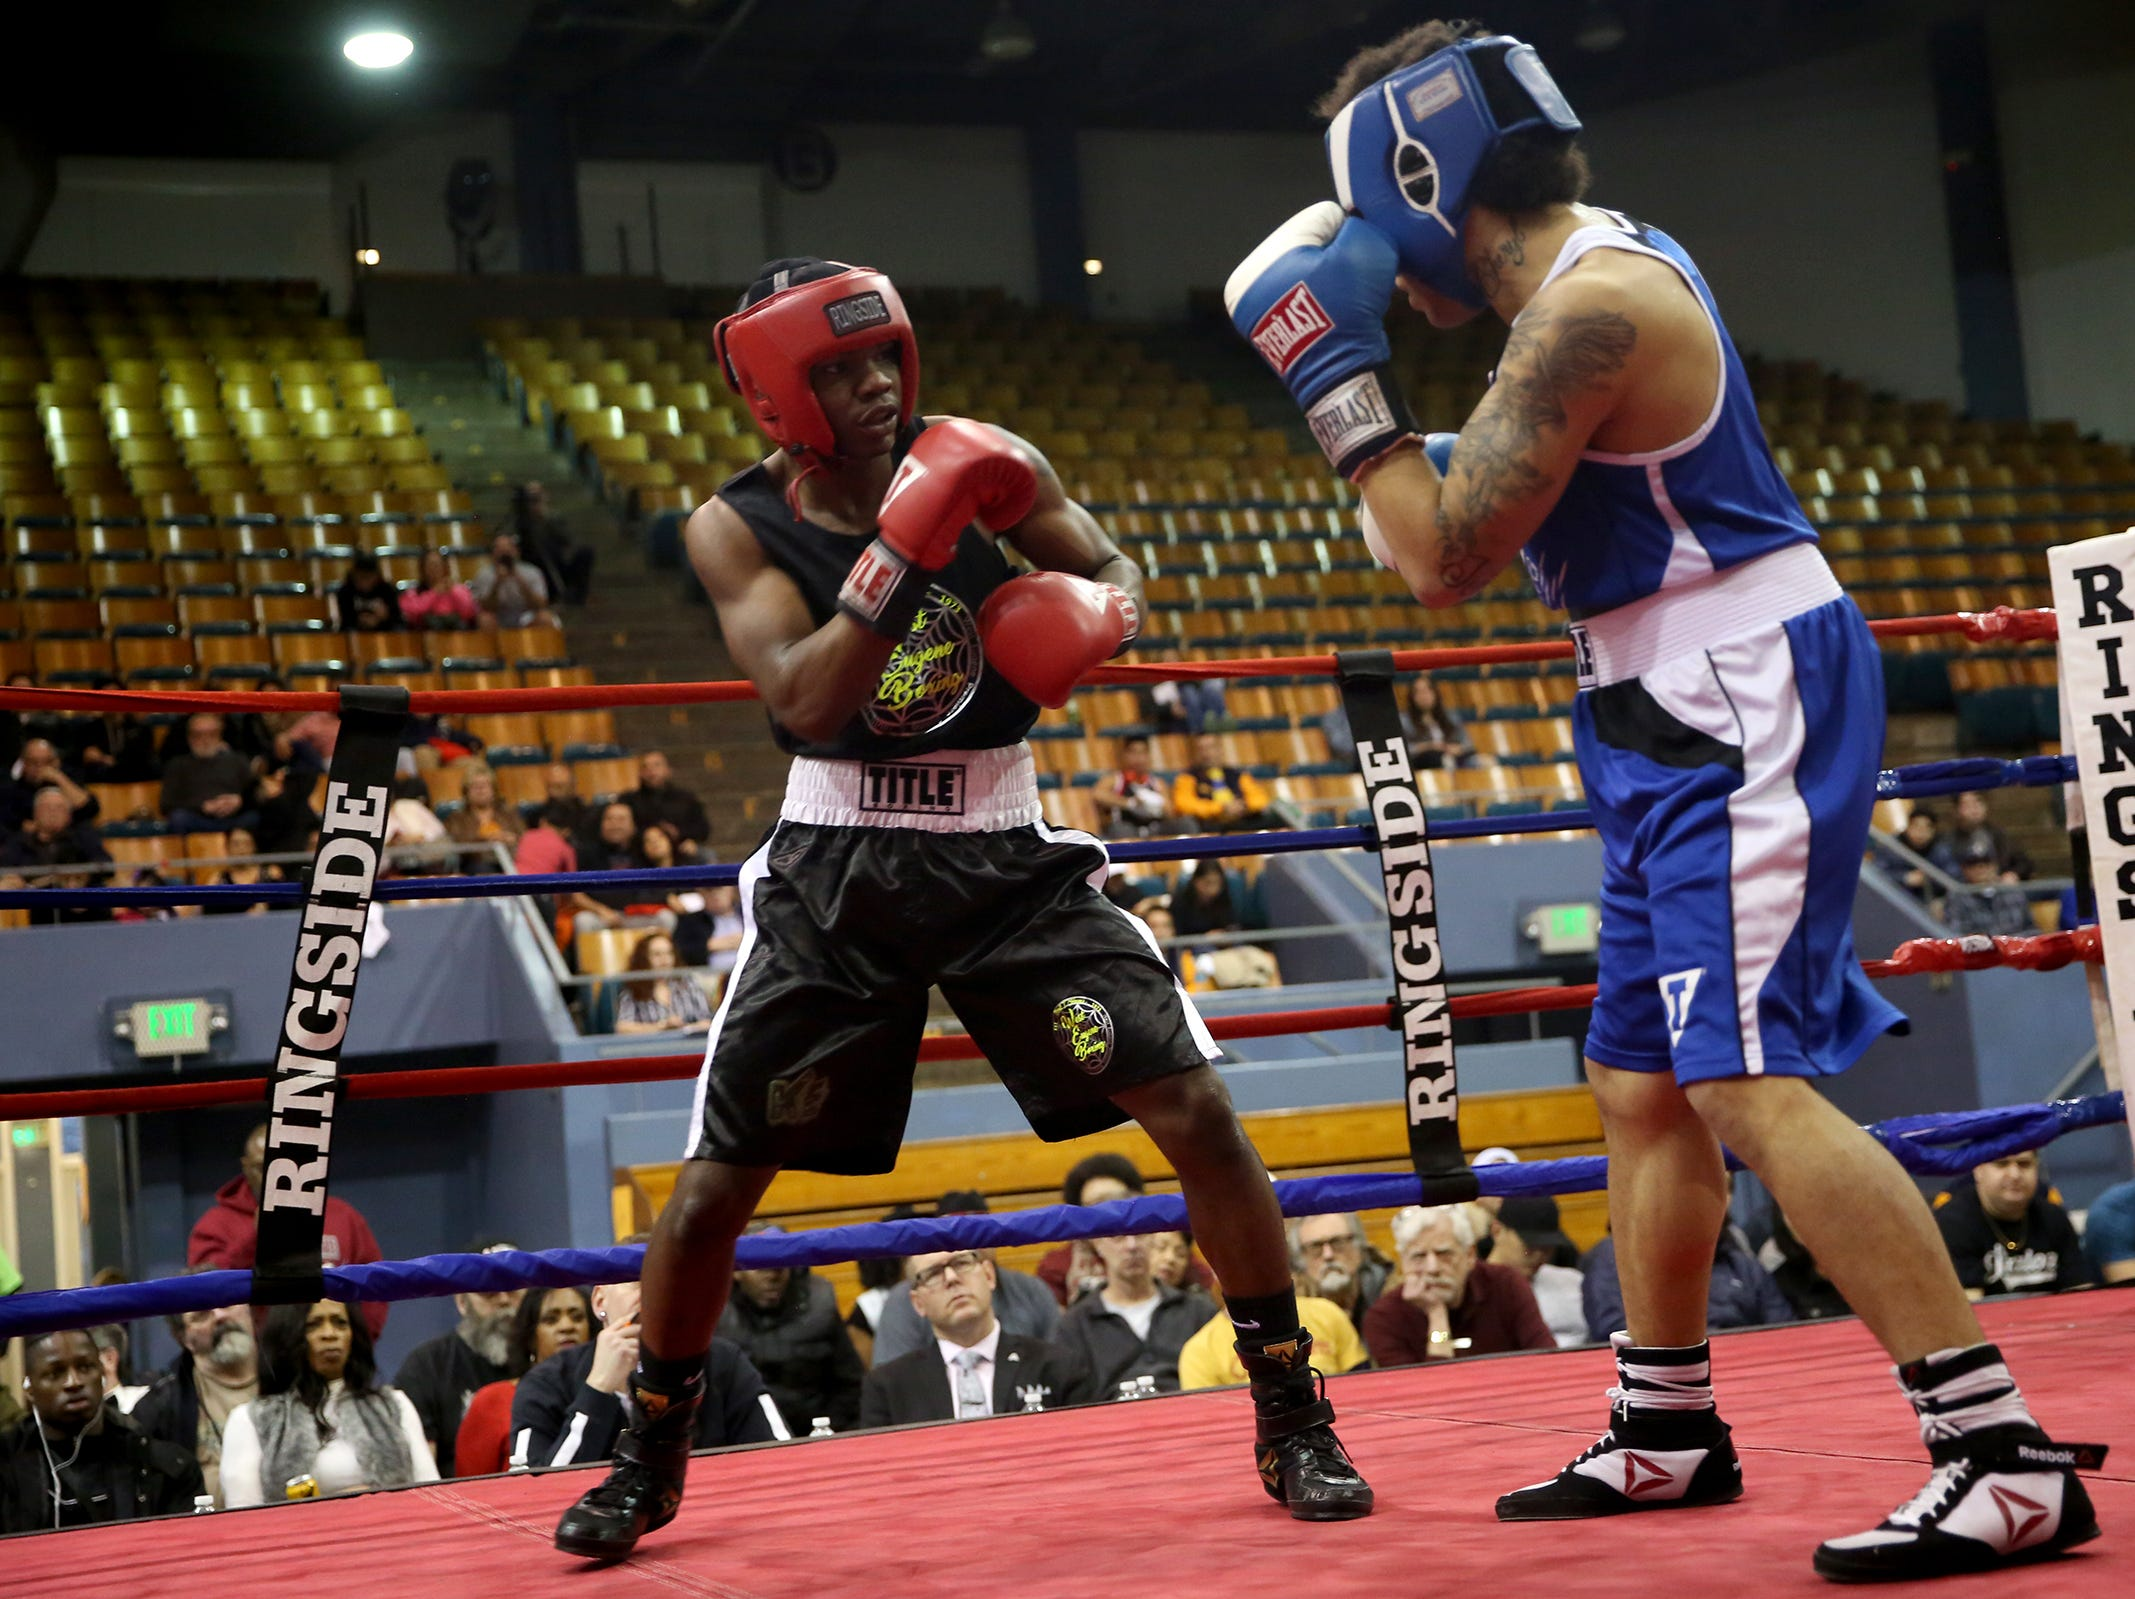 Kevin Evans of Eugene (left) takes on Gabriel Fraser of Lacy (right) during the Oregon Golden Gloves championship matches at the Salem Armory on Saturday, Feb. 2, 2019.